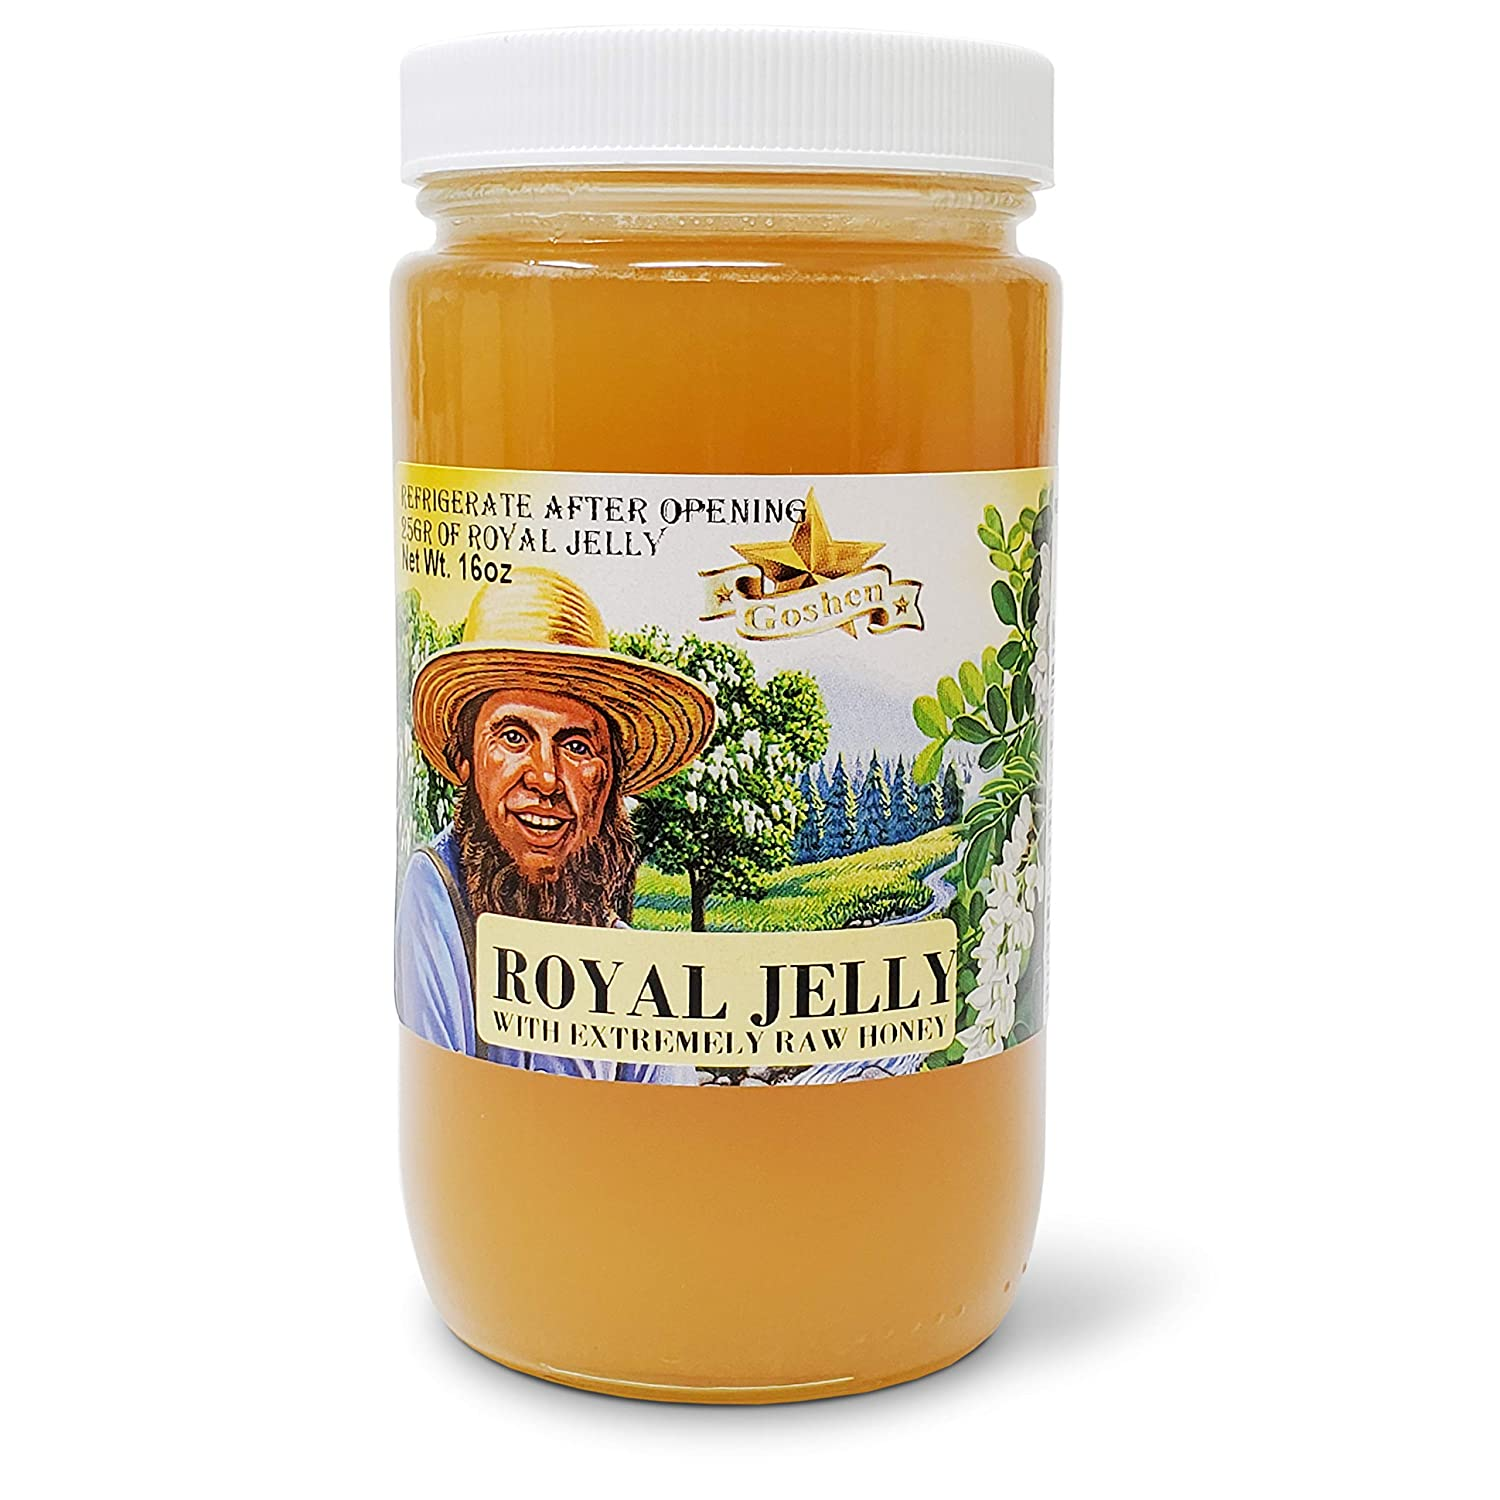 Goshen Honey Amish Extremely Raw ROYAL JELLY Honey 100% Organically Pure Fresh Natural Domestic Honey With Life Enzymes Health Benefits | Unfiltered Unprocessed Unheated | 1 Lb Jar | 16 Oz Glass Jar